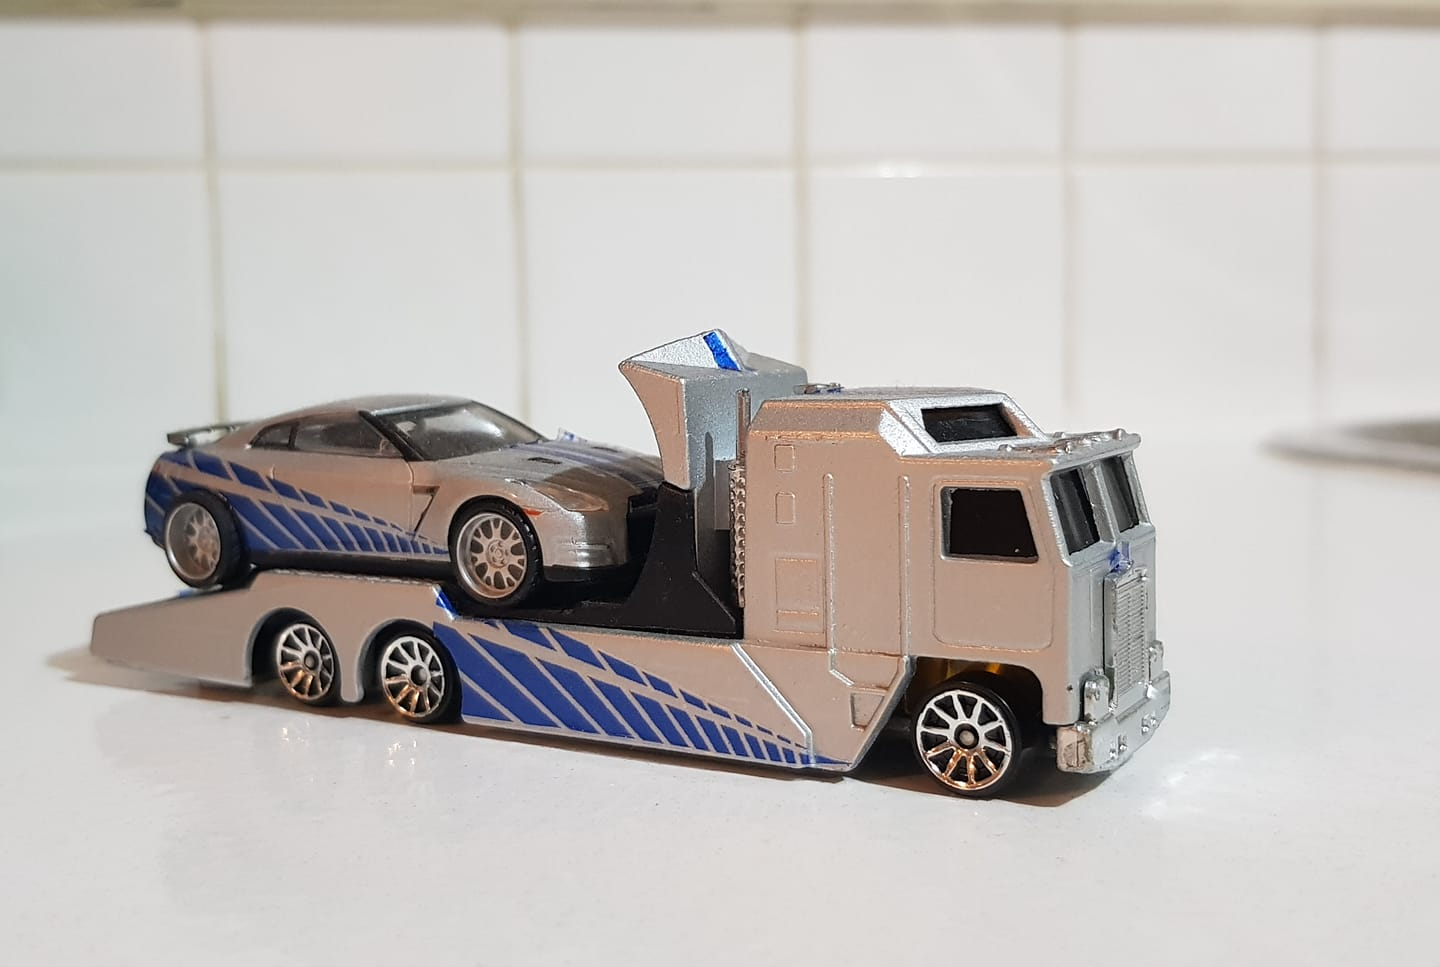 Ben Bax Brians Nissan R34 And Transporter My Custom Hot